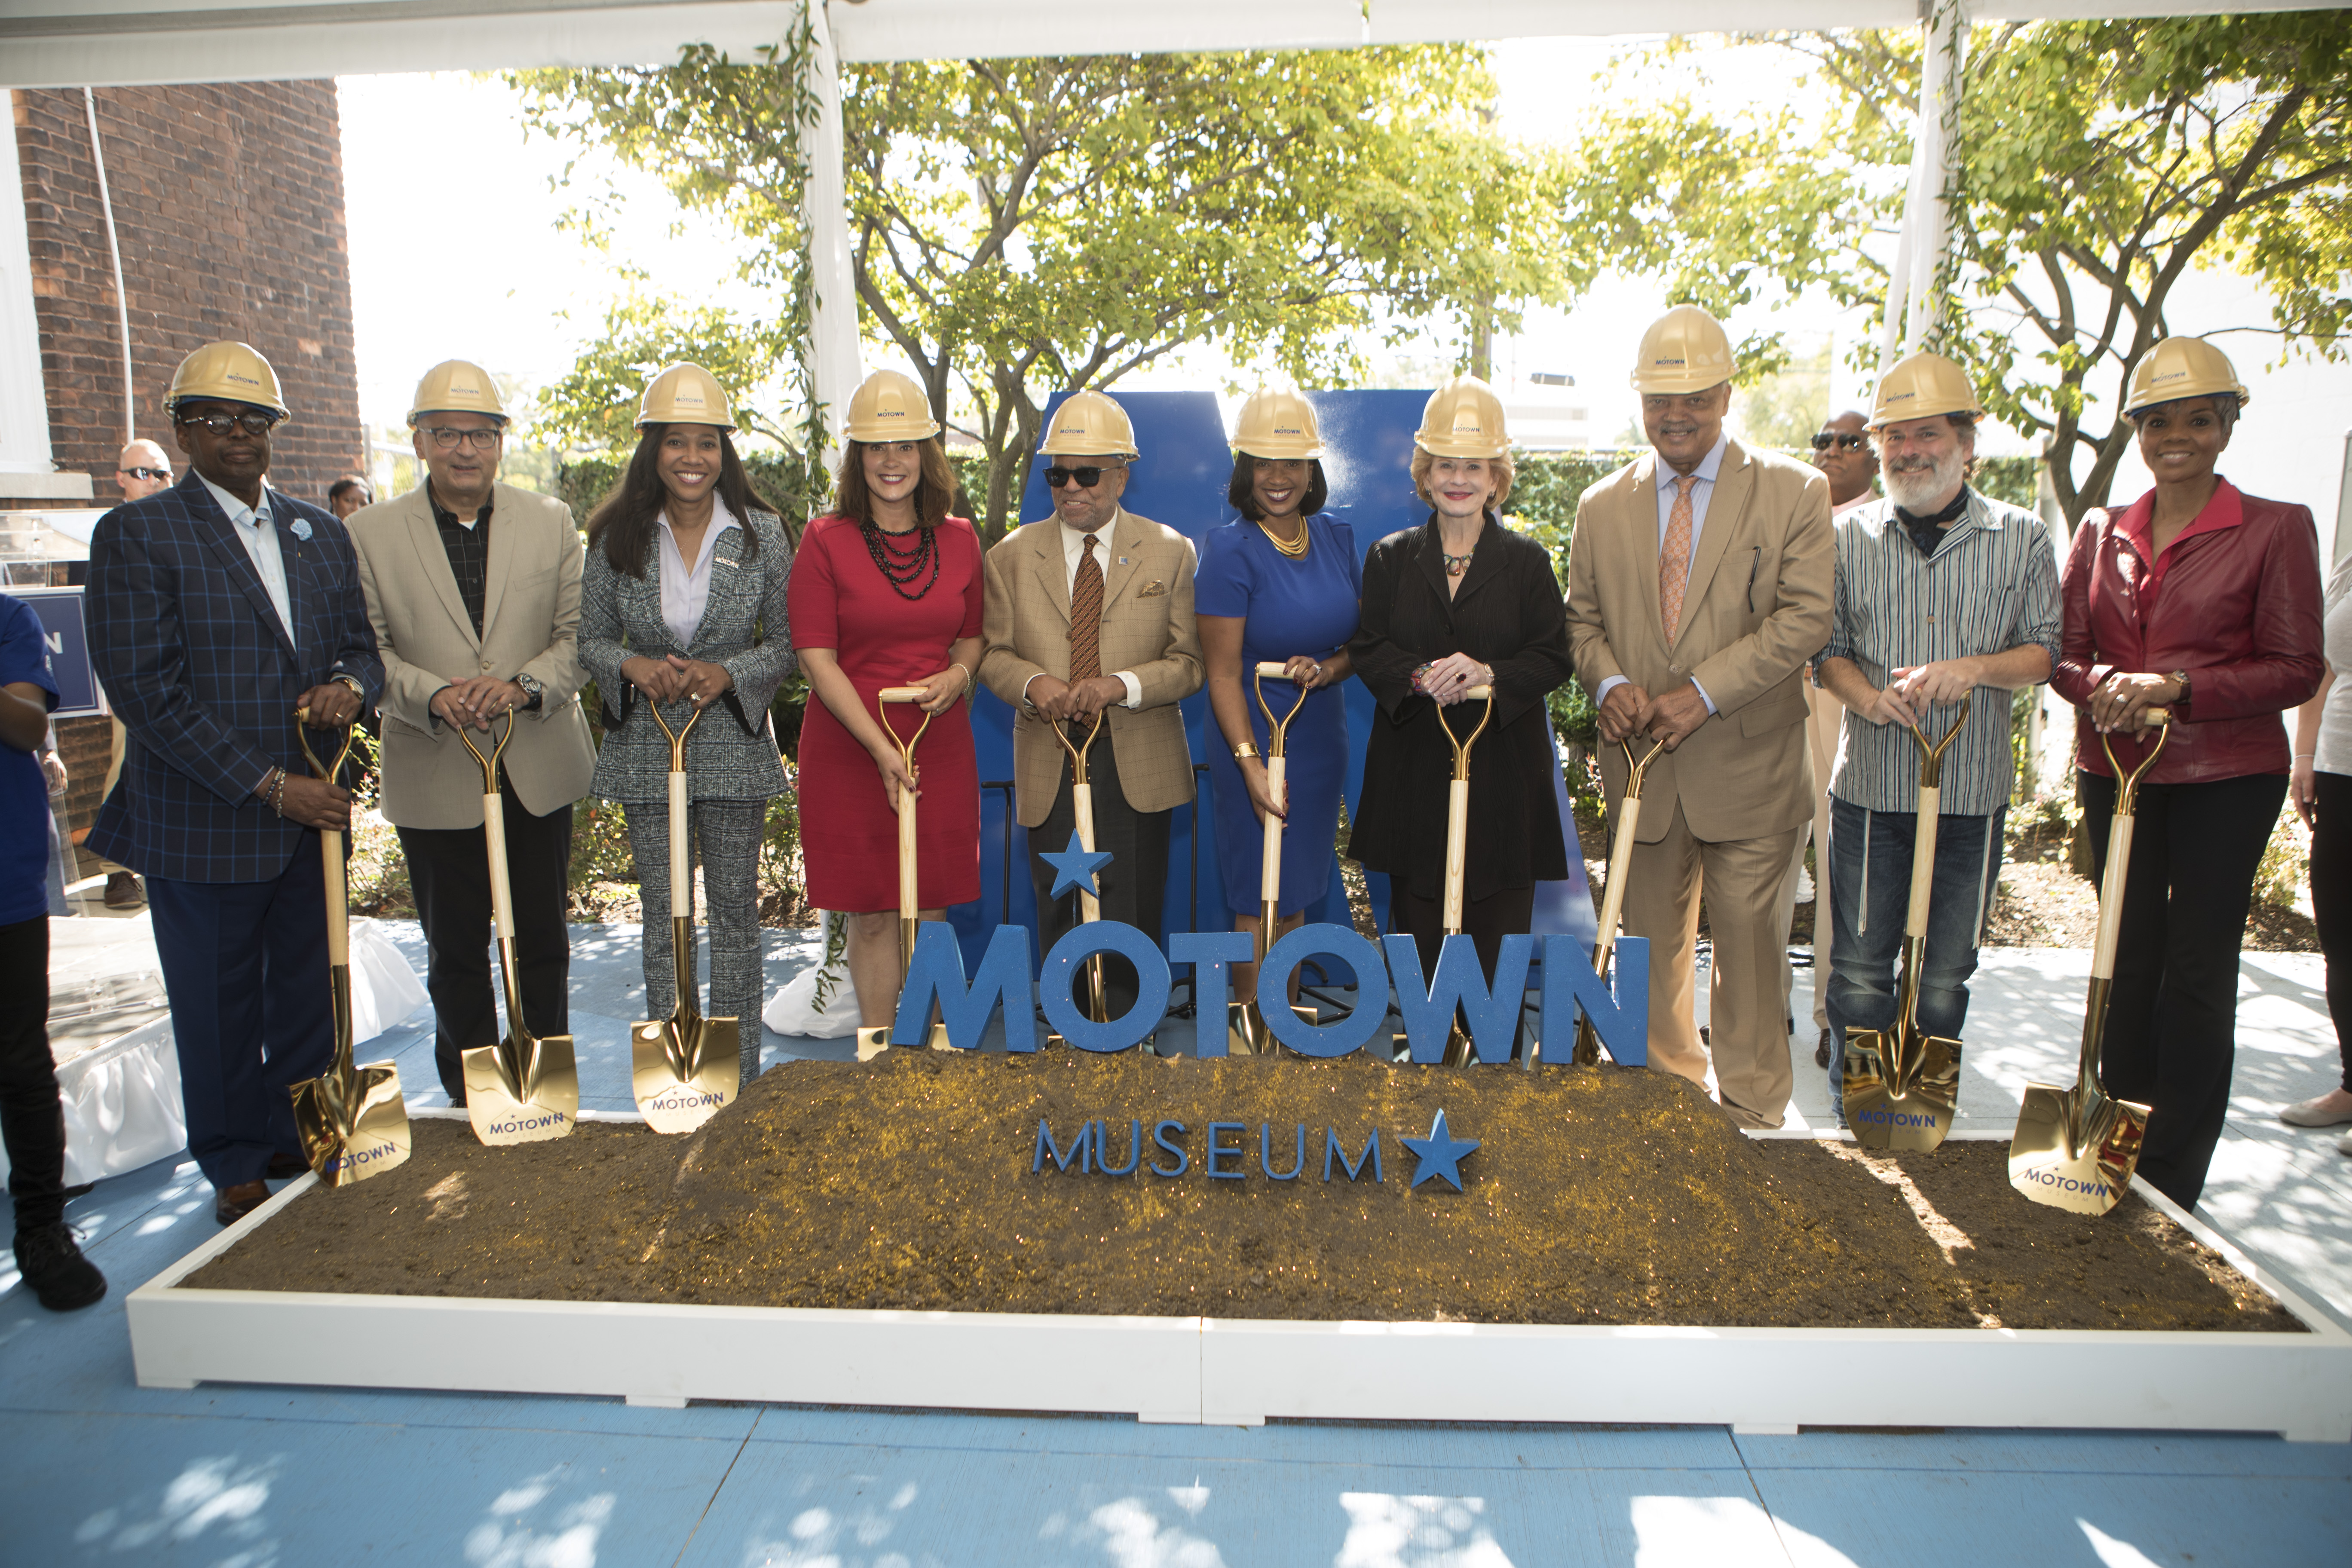 """10 people with shovels and hardhats stand over a mount of dirt with letters reading """"Motown Museum"""" on top."""